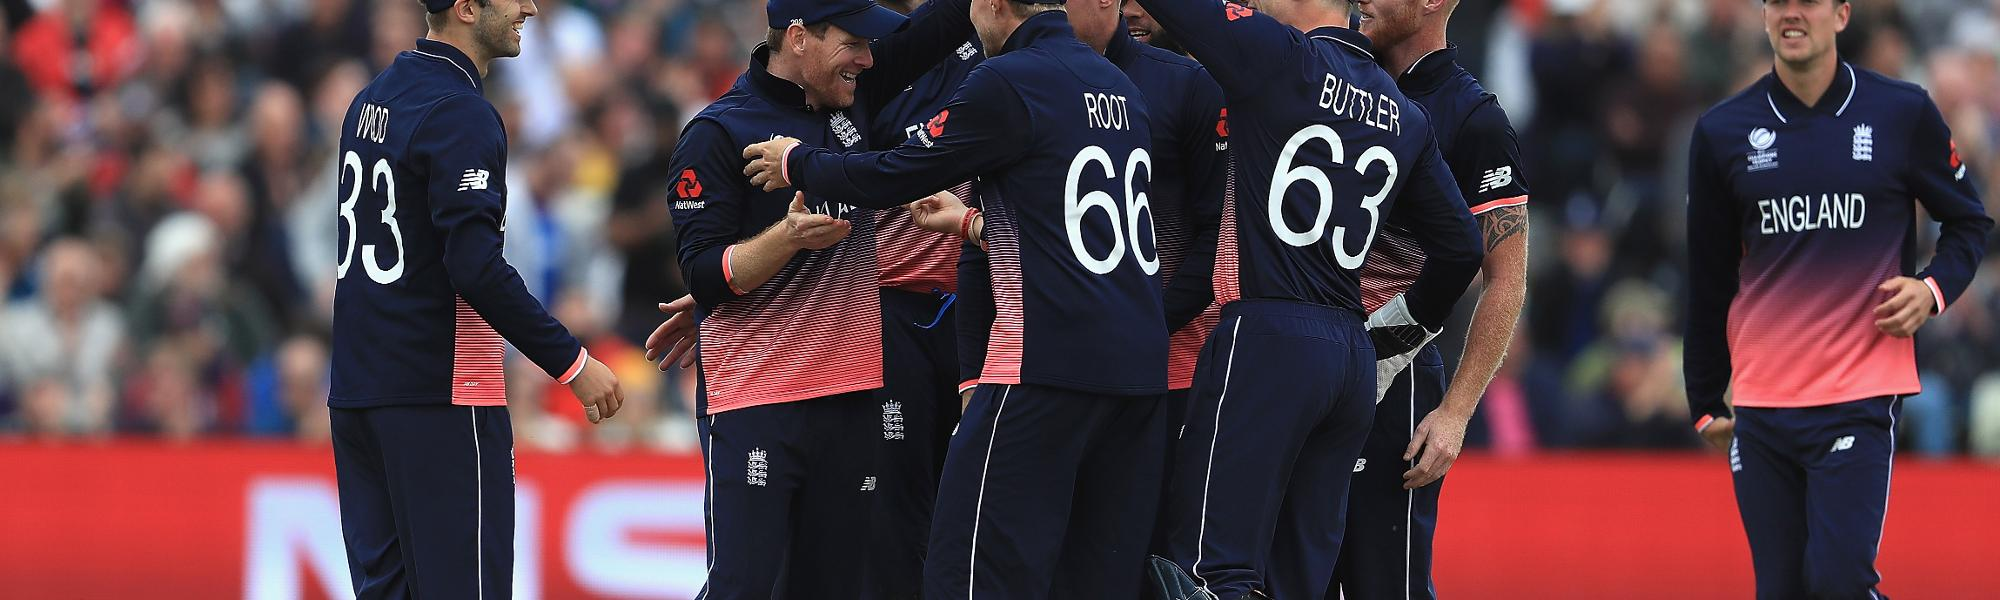 Ben Stokes struck to remove Aaron Finch for a splendid 64-ball 68 to bring England back in the contest.